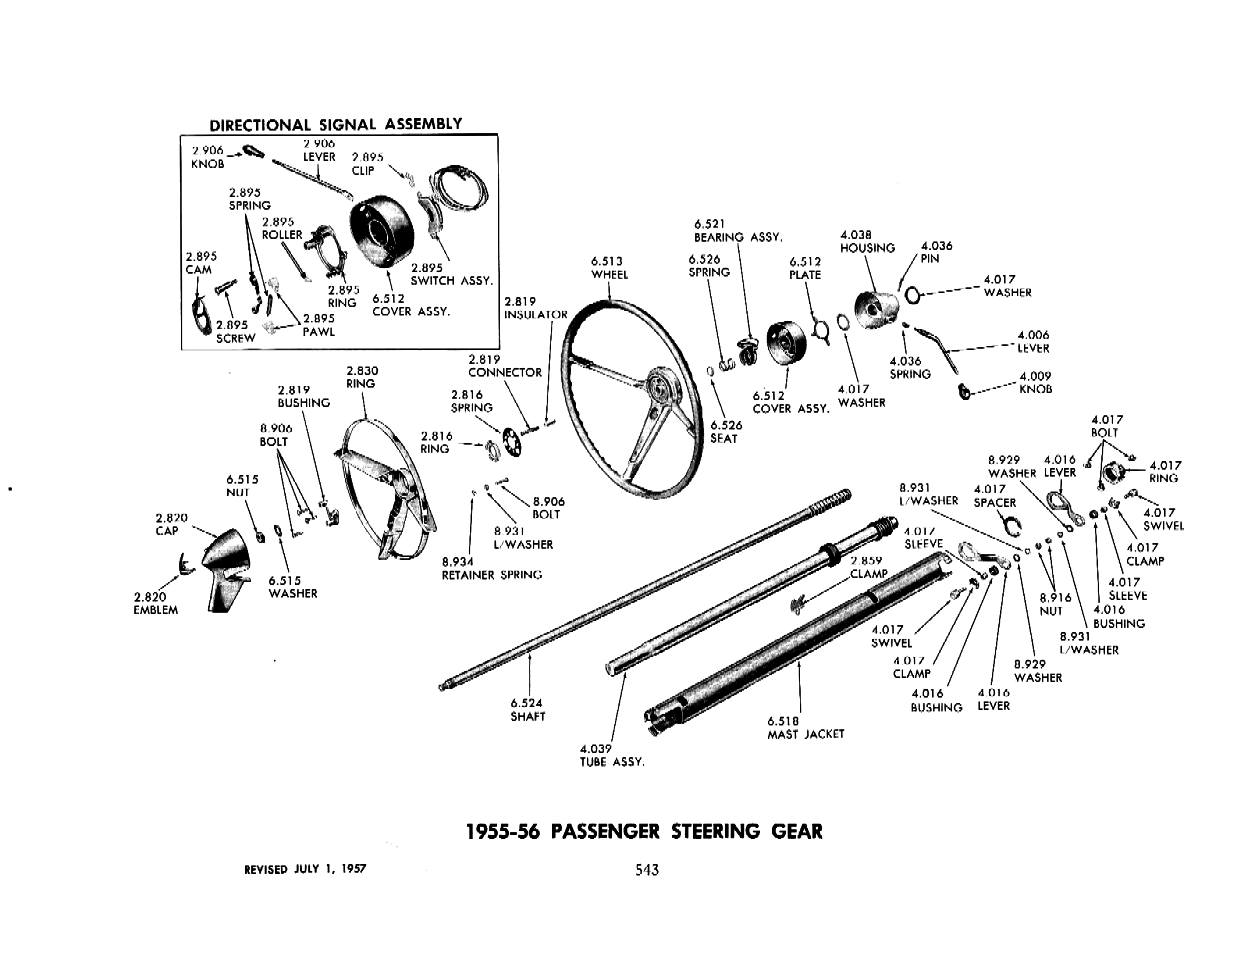 Wiring Diagram 1955 Chevy Ignition Switch